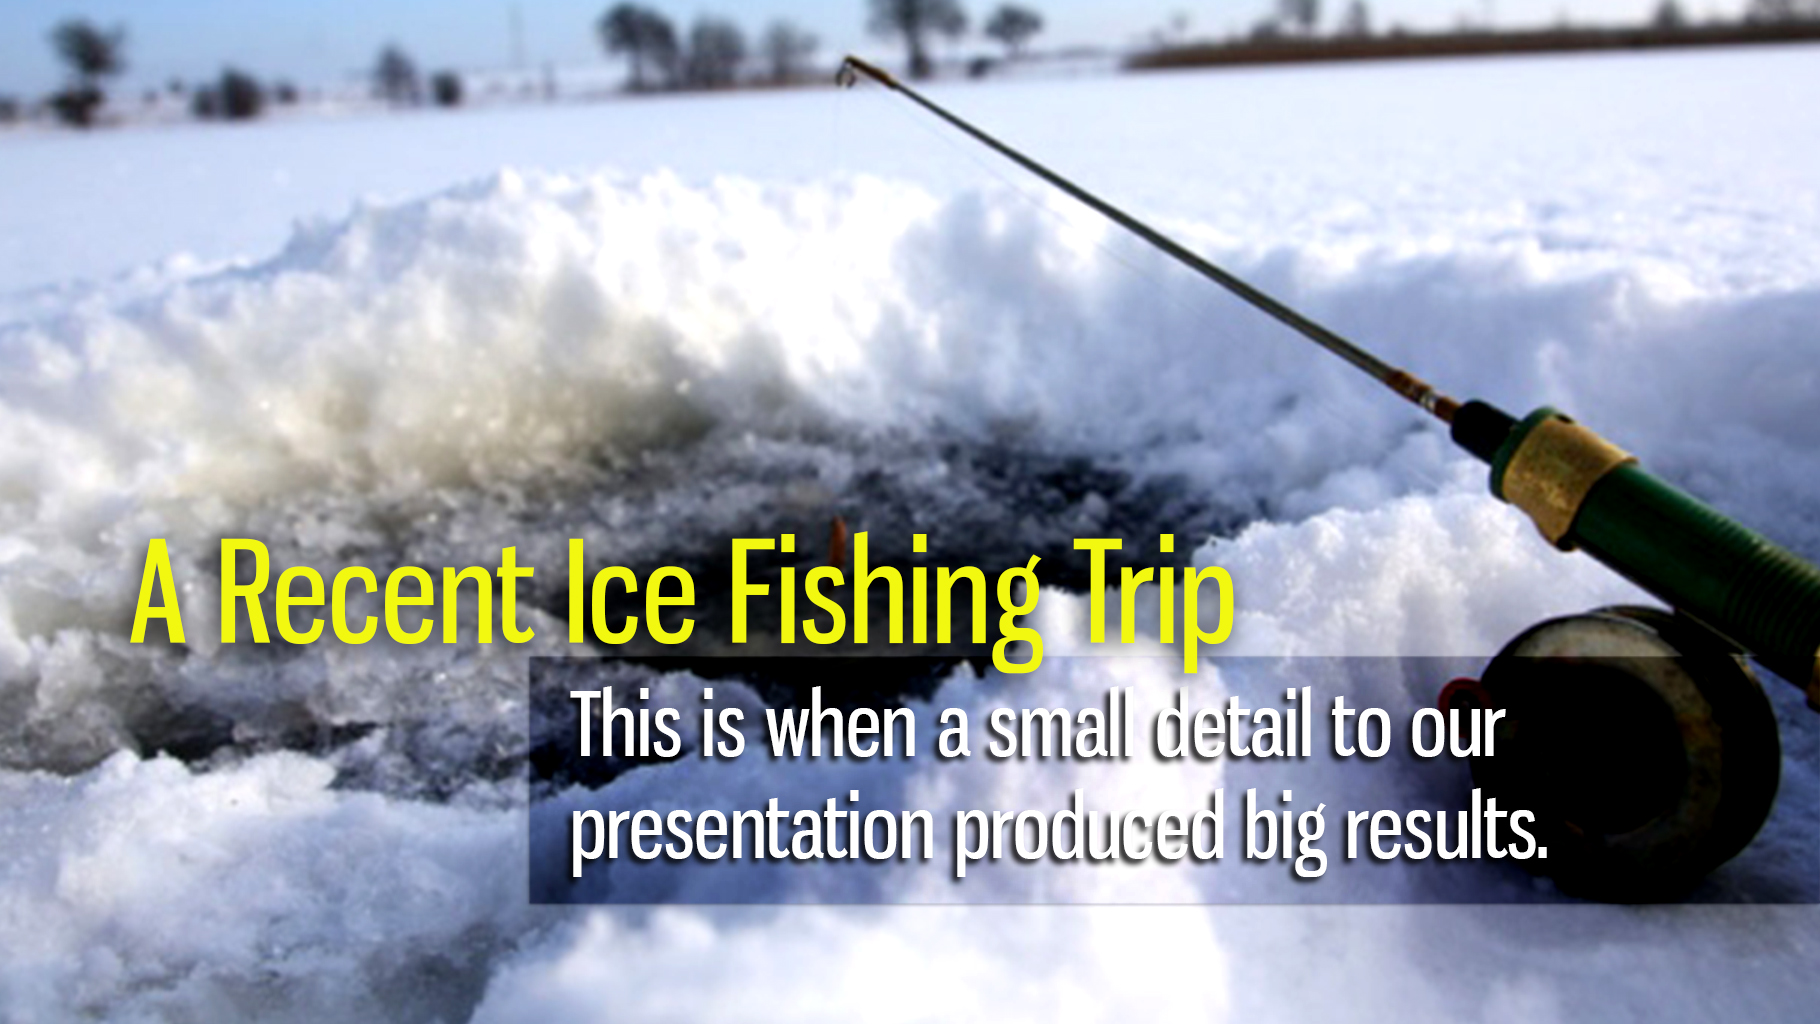 A Recent Ice Fishing Trip